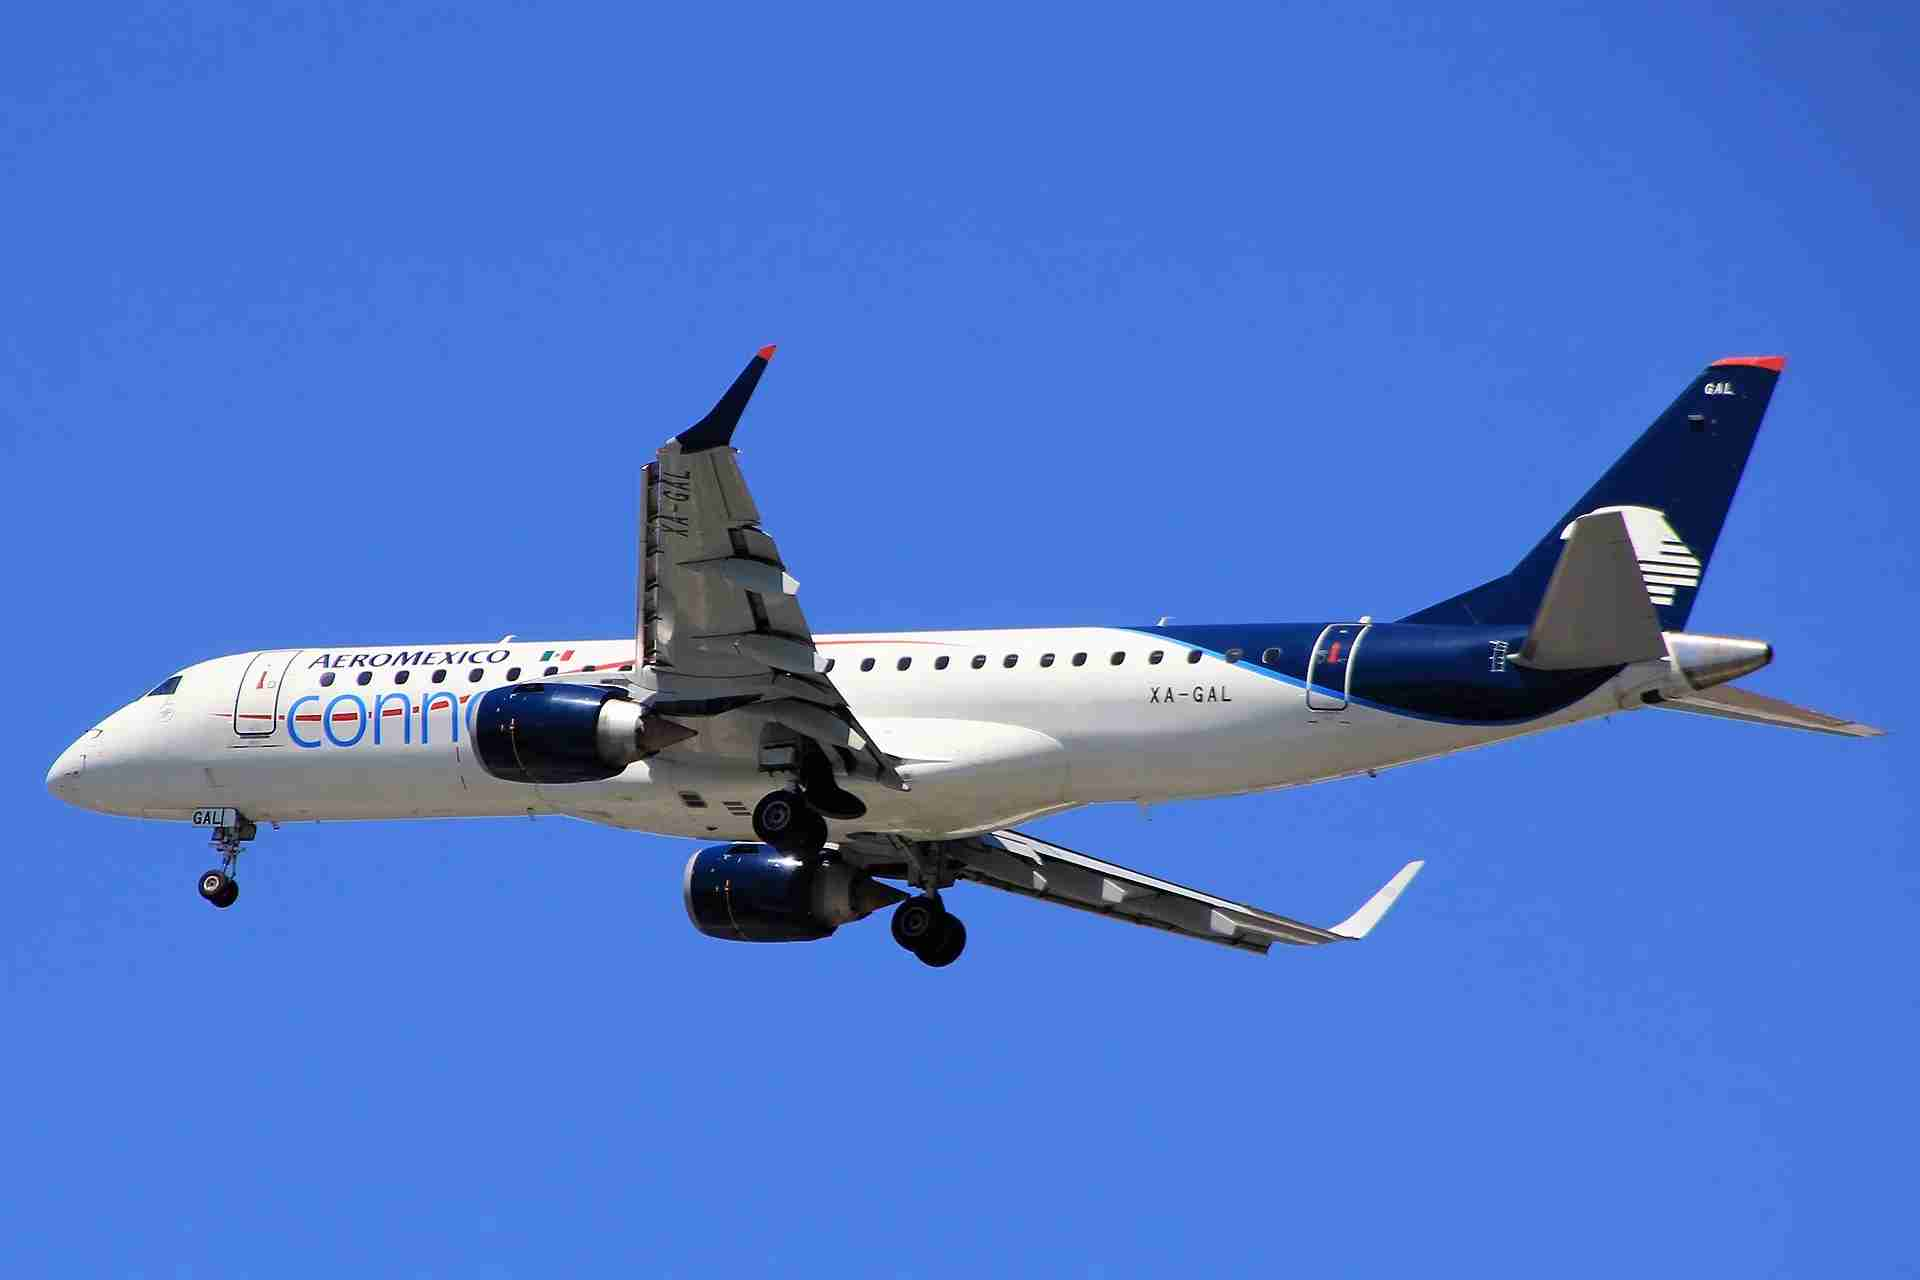 Aeromexico Connect Embraer E190 (XA-GAL) crashed shortly after takeoff roll in Durango, Mexico on July 31st (Image by Max Effect via Flickr)